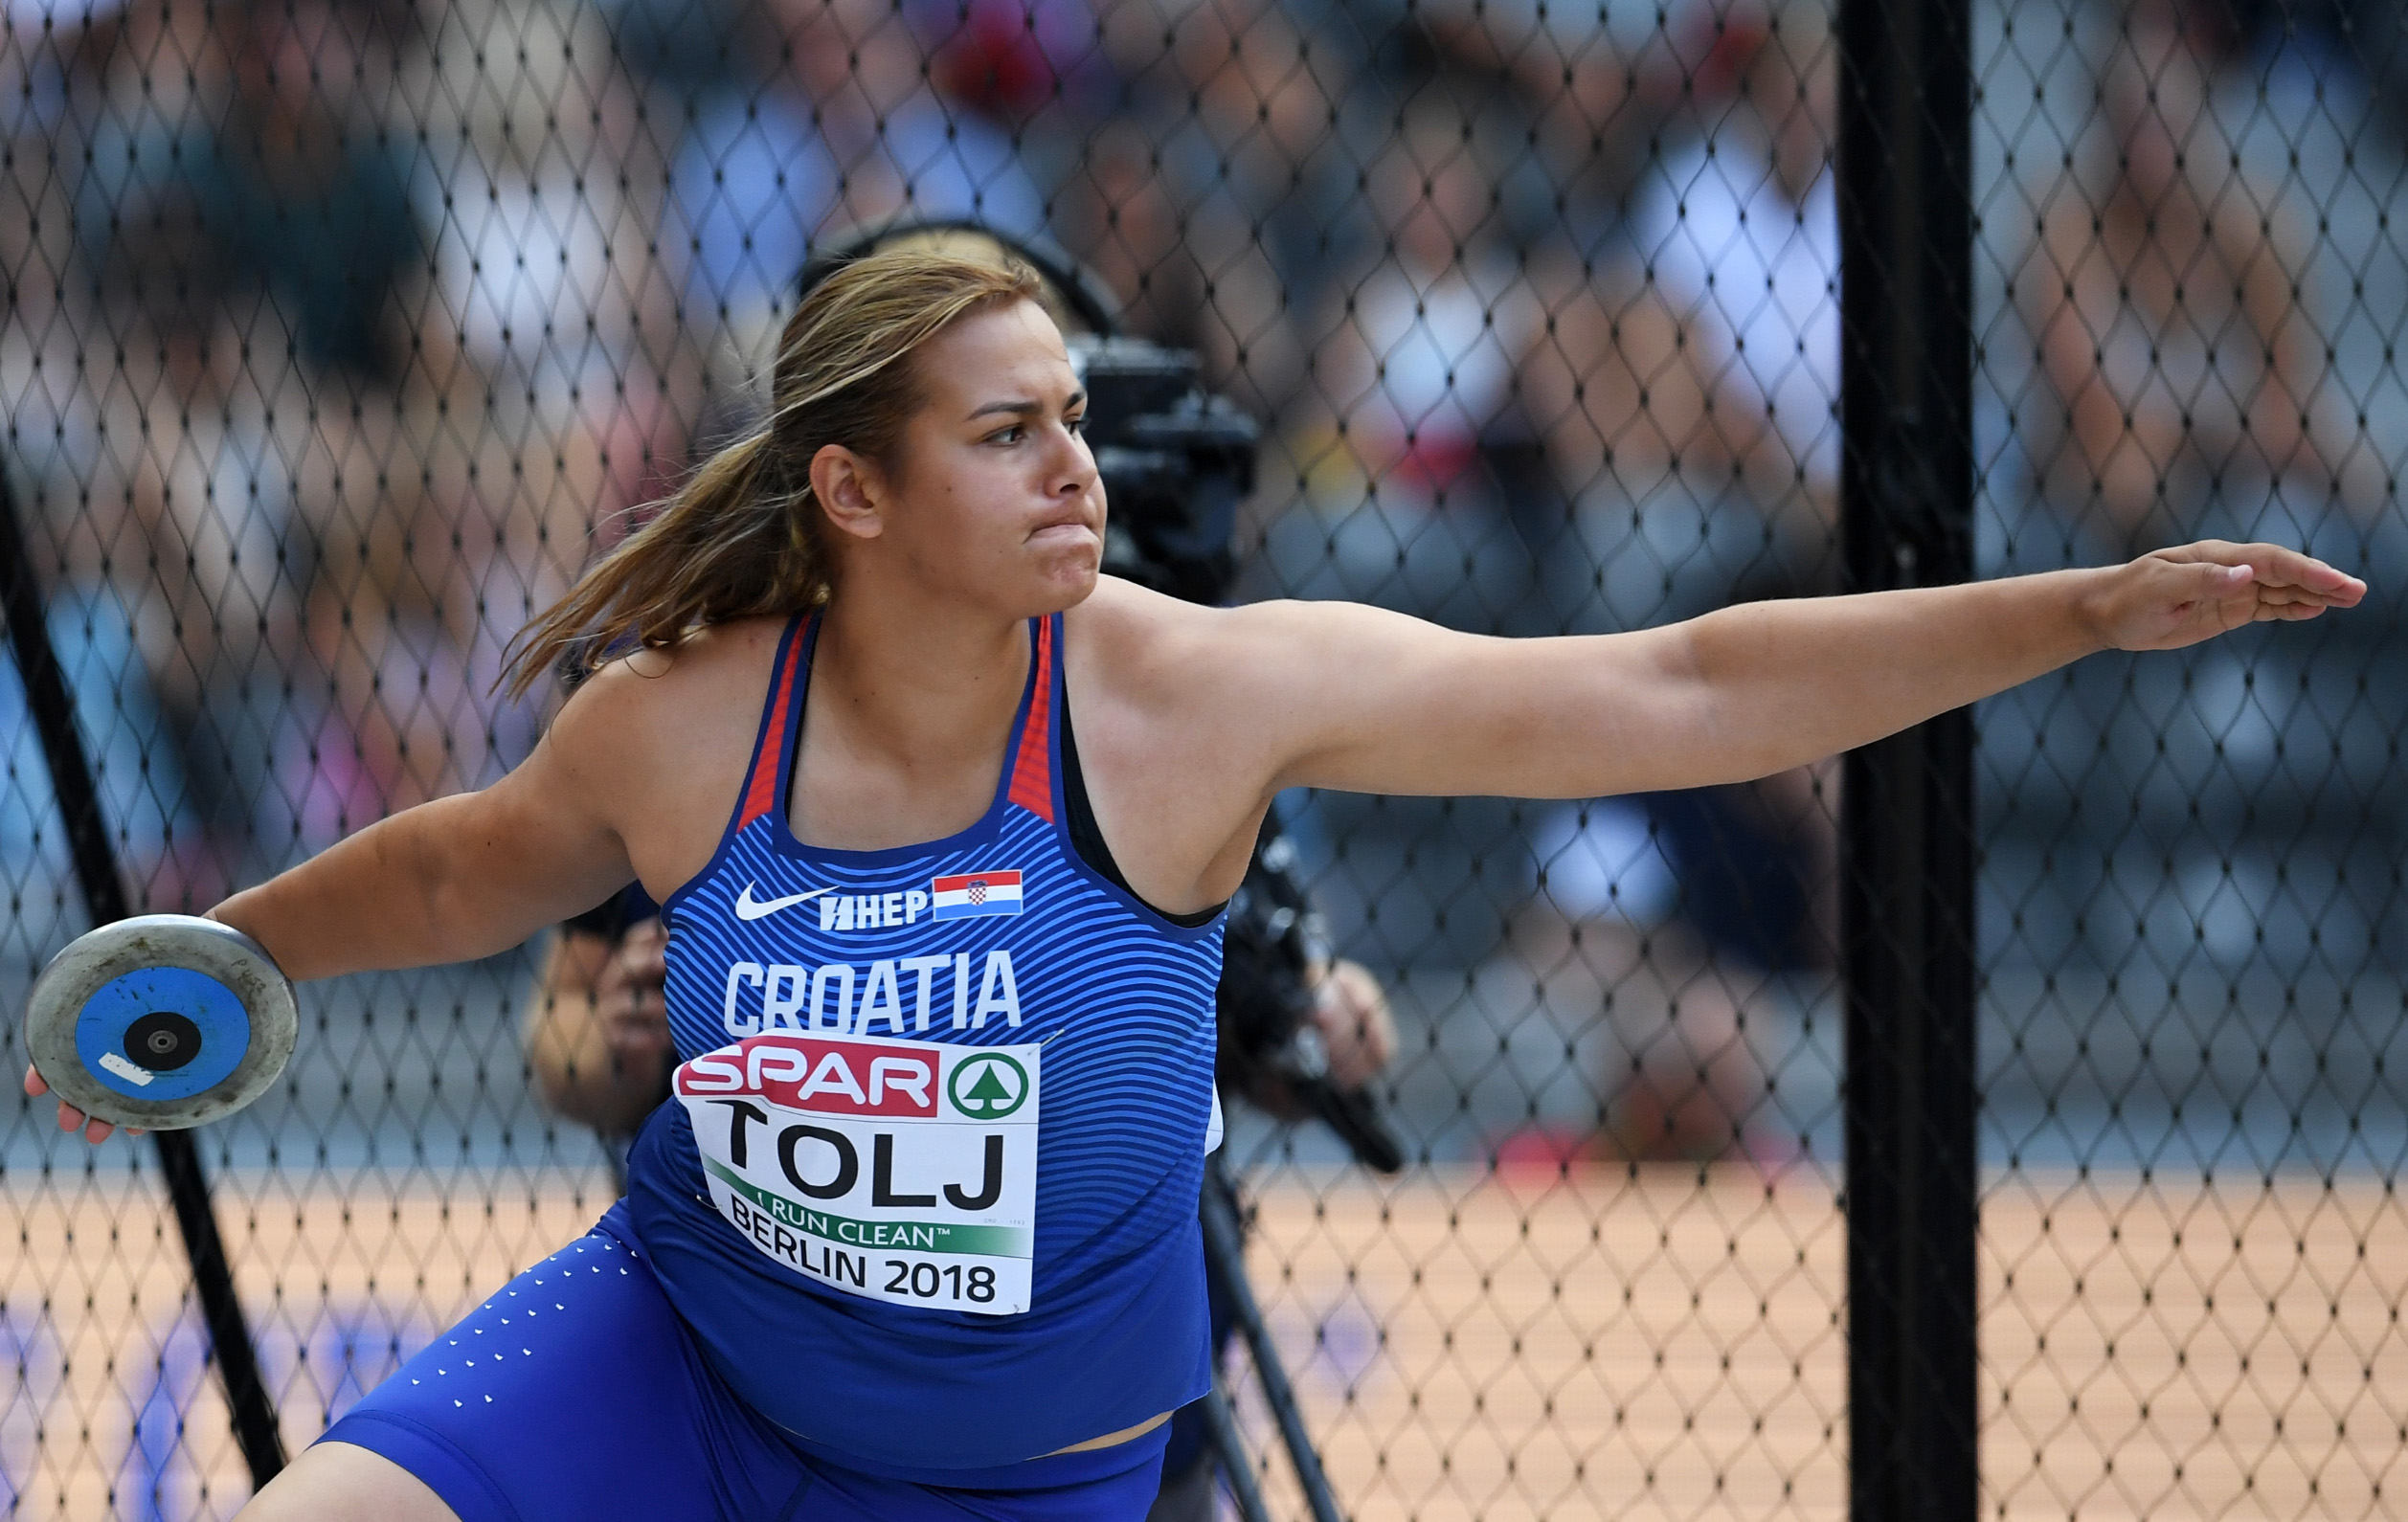 BERLIN, GERMANY - AUGUST 09:  Marija Tolj of Croatia competes in the Women's discus throw qualifying round during day three of the 24th European Athletics Championships at Olympiastadion on August 9, 2018 in Berlin, Germany. This event forms part of the first multi-sport European Championships.  (Photo by Matthias Hangst/Getty Images)